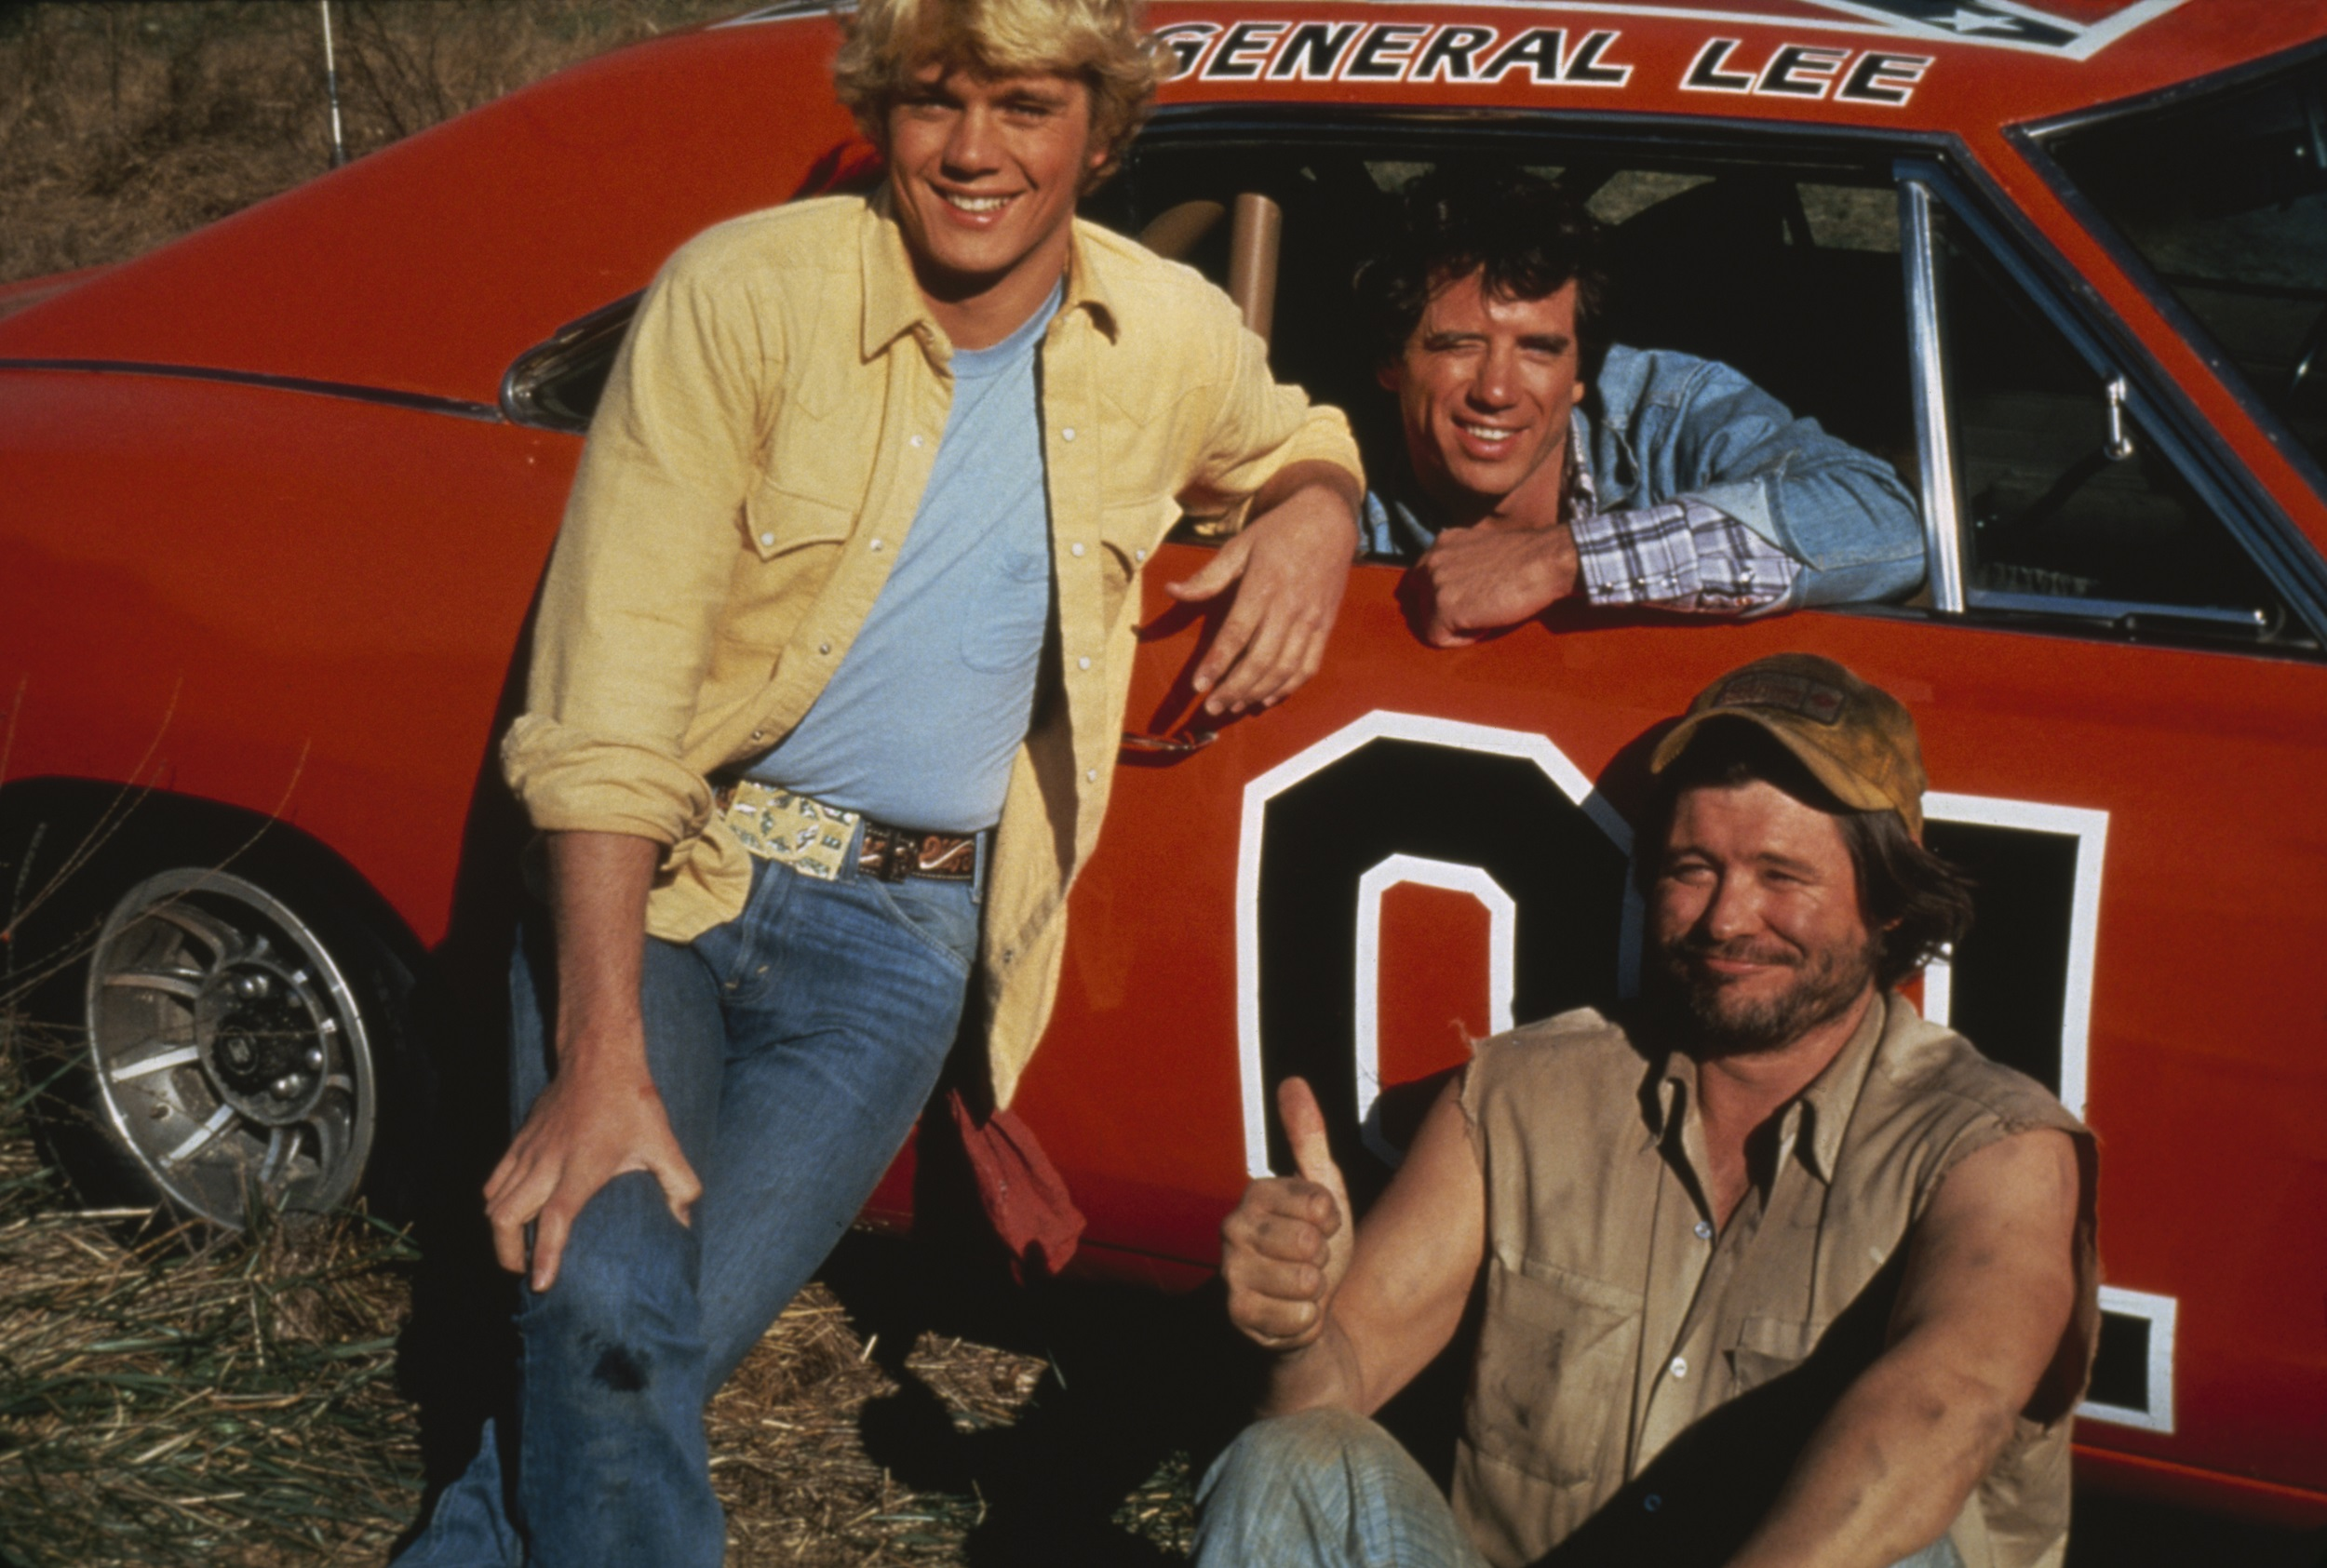 John Schneider, Tom Wopat, and Ben Jones as Bo Duke, Luke Duke, and Cooter. They are posing with the General Lee in The Dukes of Hazzard